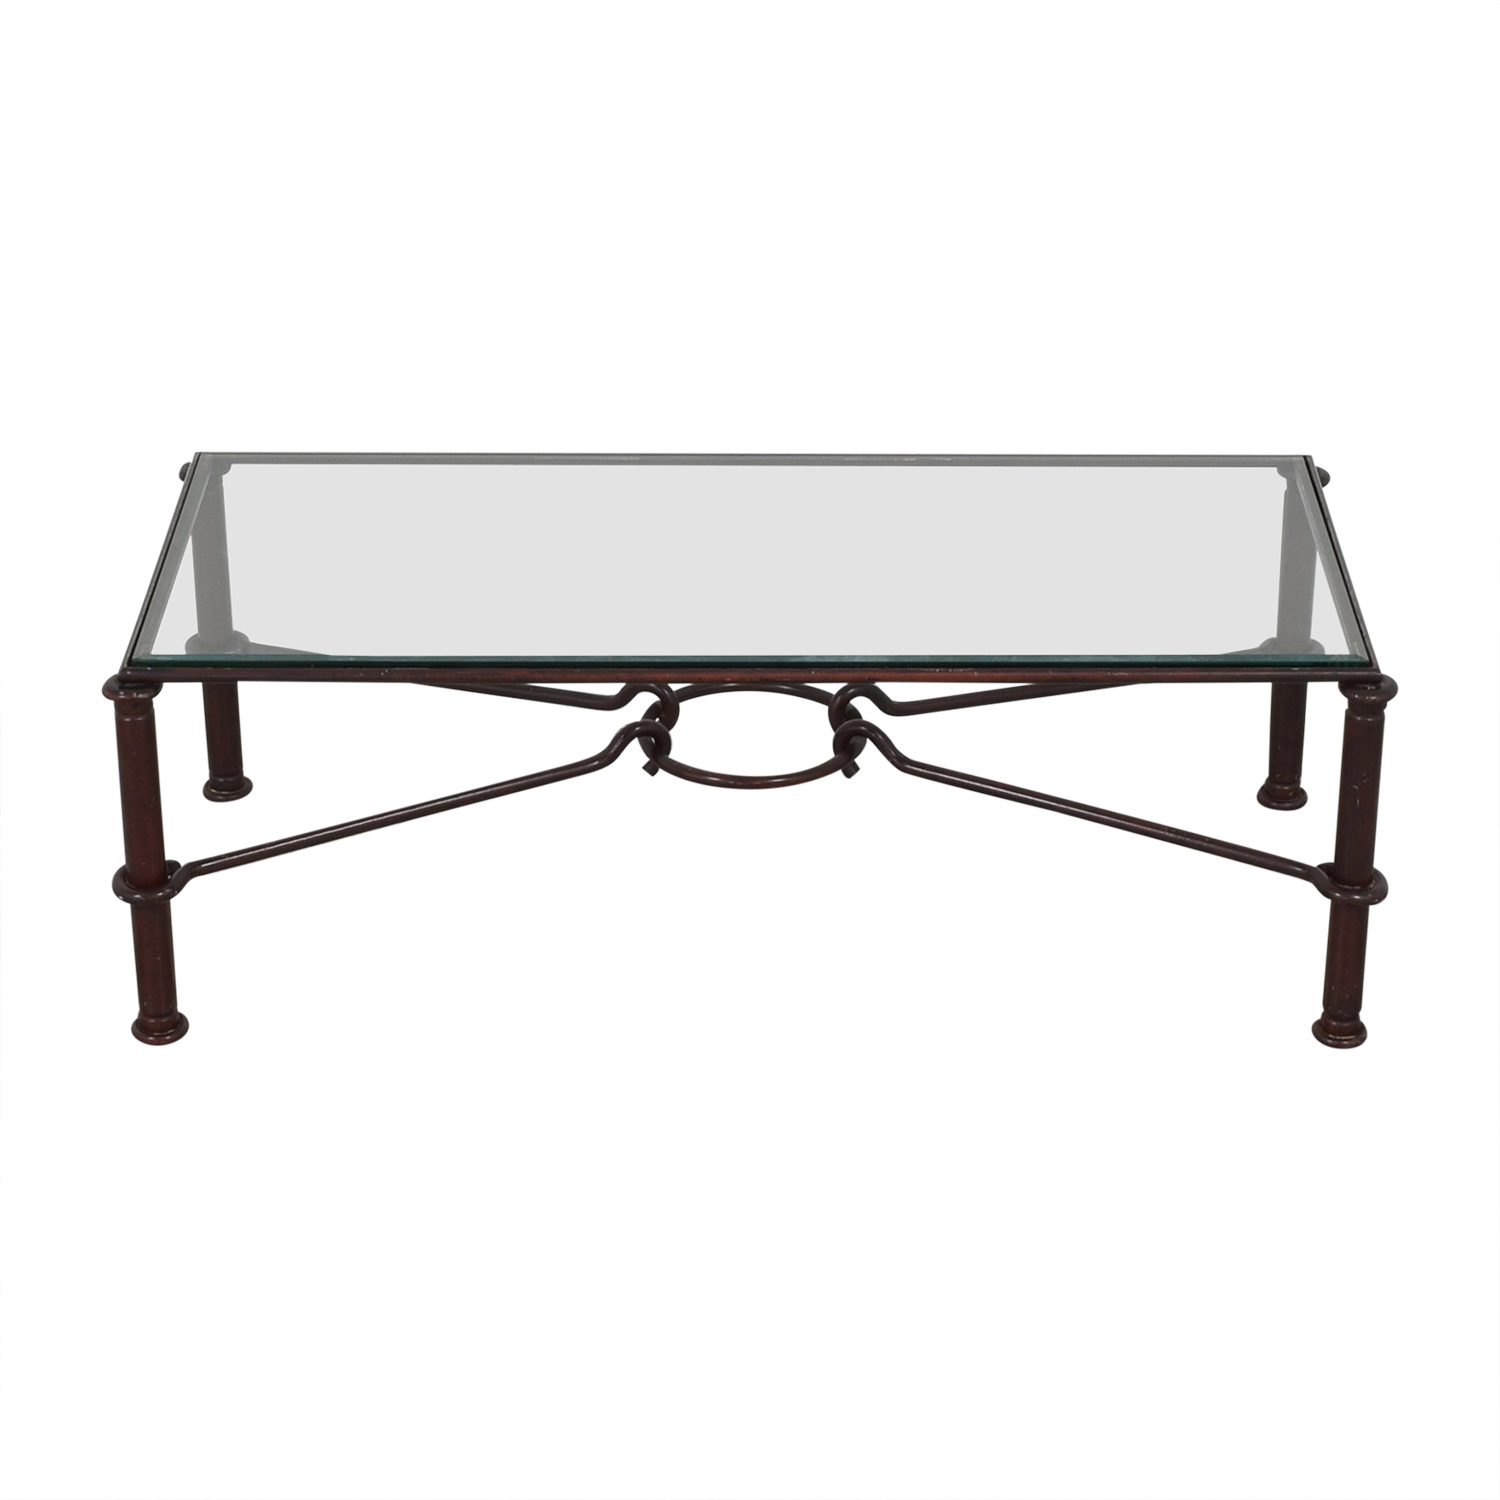 West Elm Glass Top Coffee Table sale